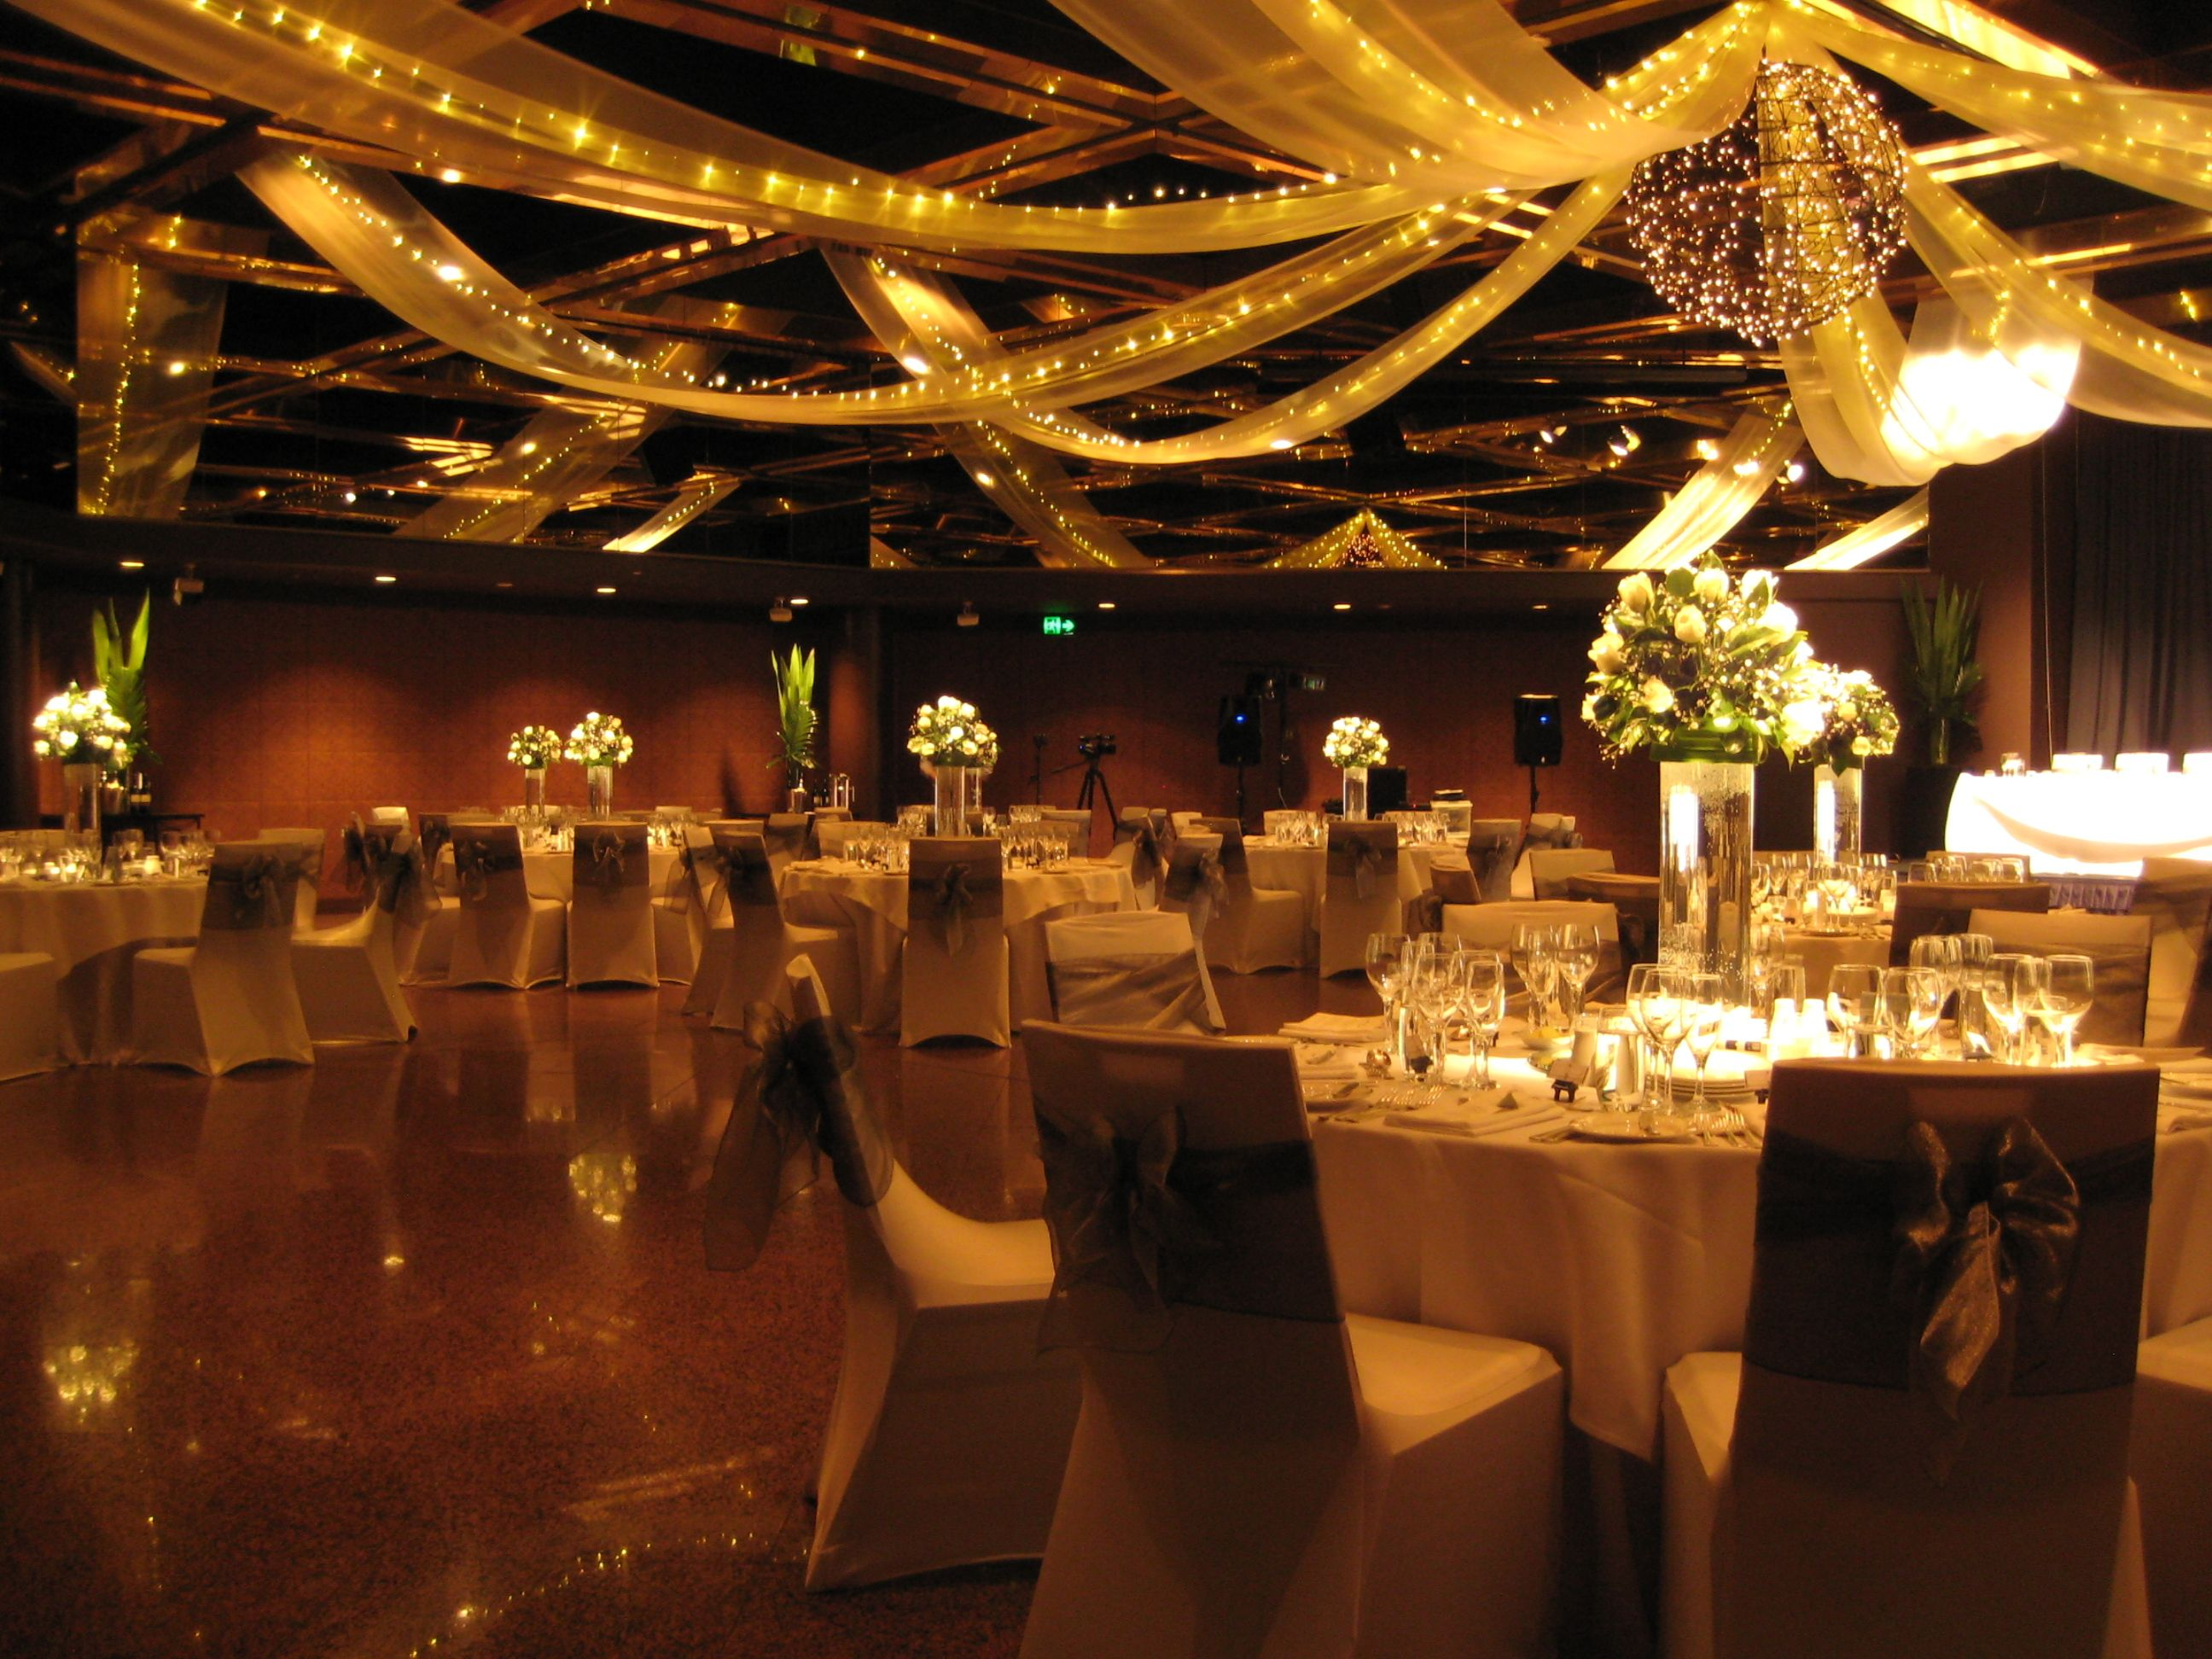 Intercontinental adelaide ballroom ceiling swagging with fairy intercontinental adelaide ballroom ceiling swagging with fairy lights junglespirit Choice Image